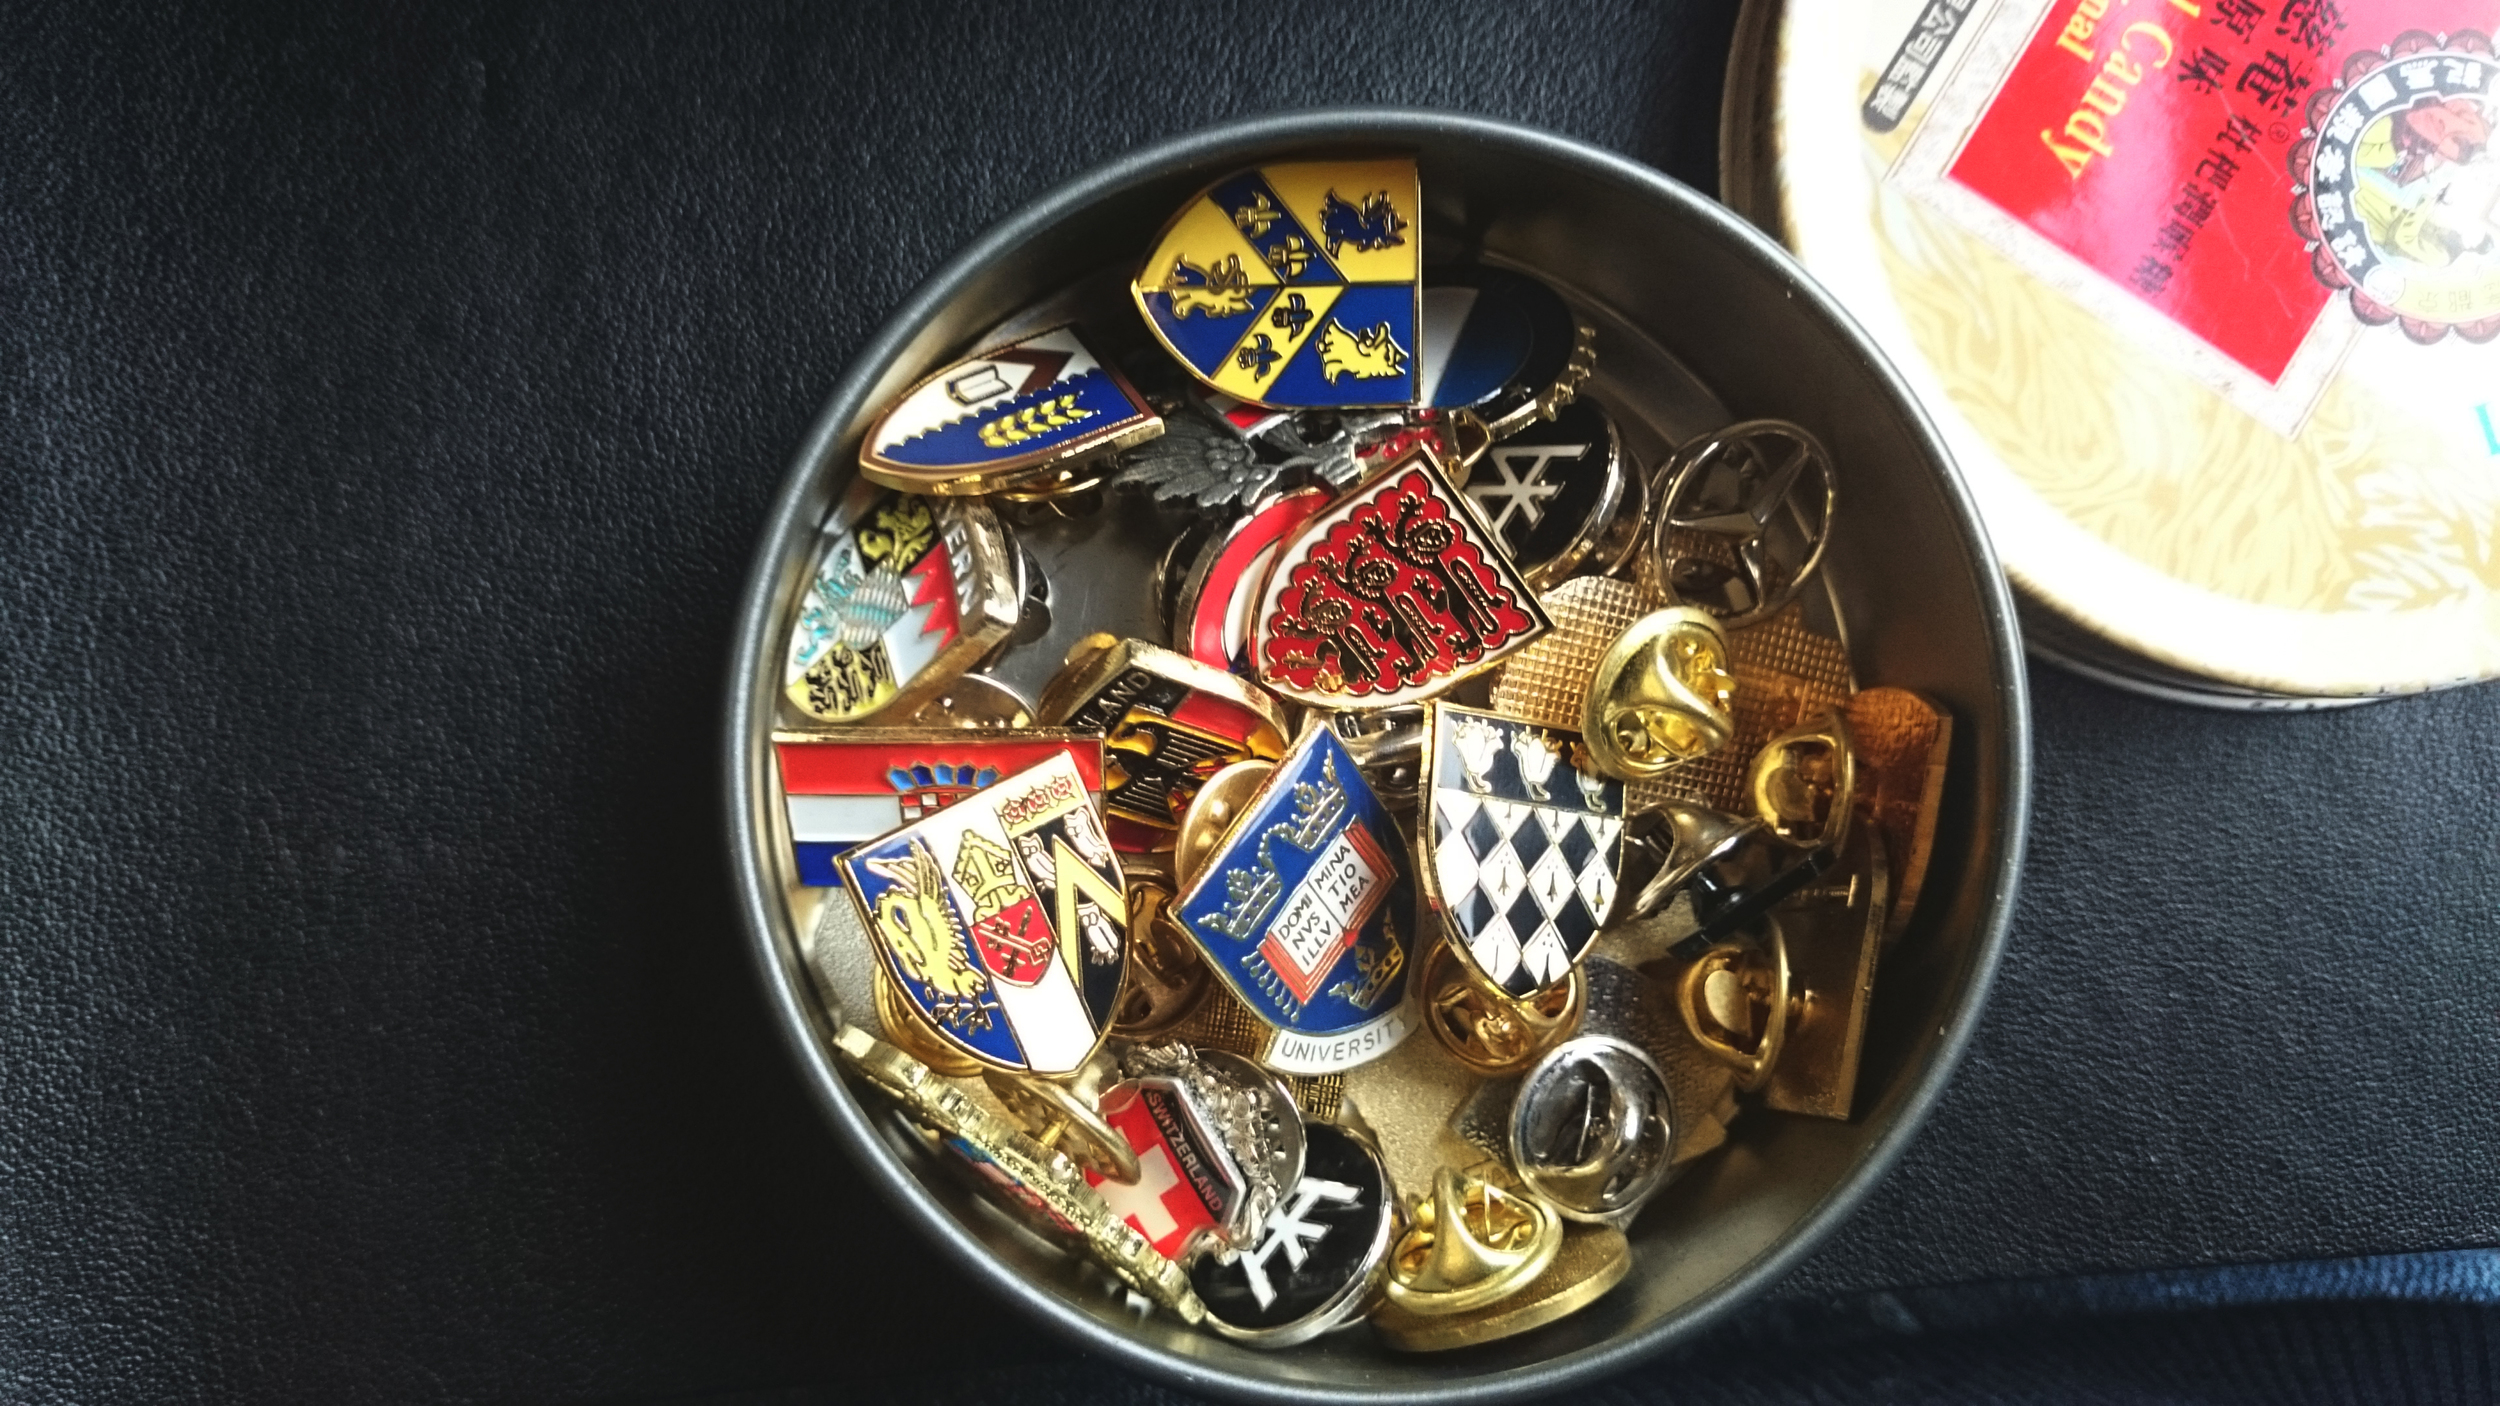 Pin collection I acquired across europe! ignore the duplicates haha